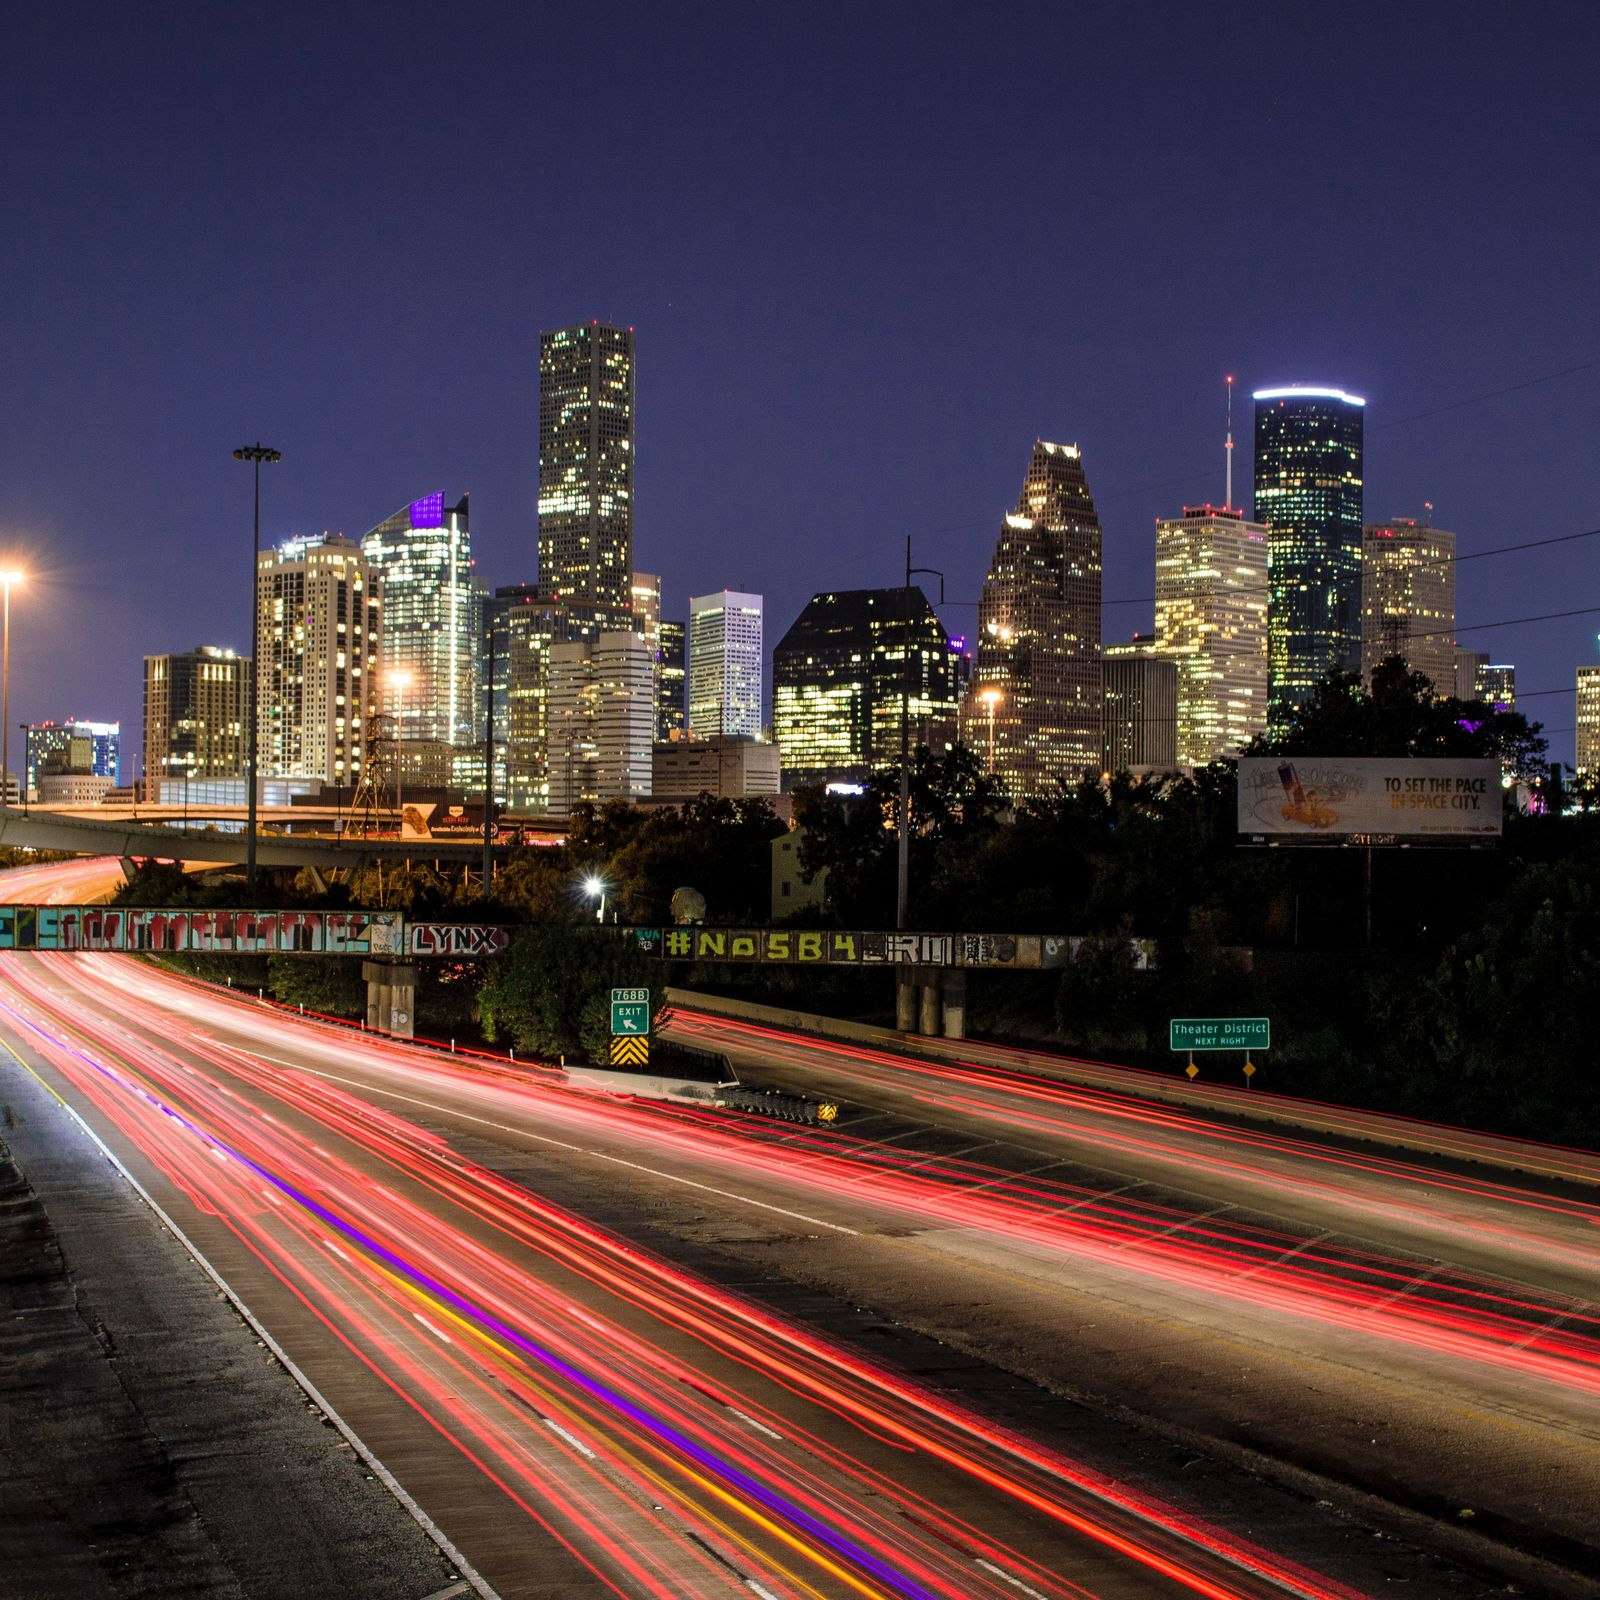 Houston, Texas - Photo by Kevin Hernandez on Unsplash